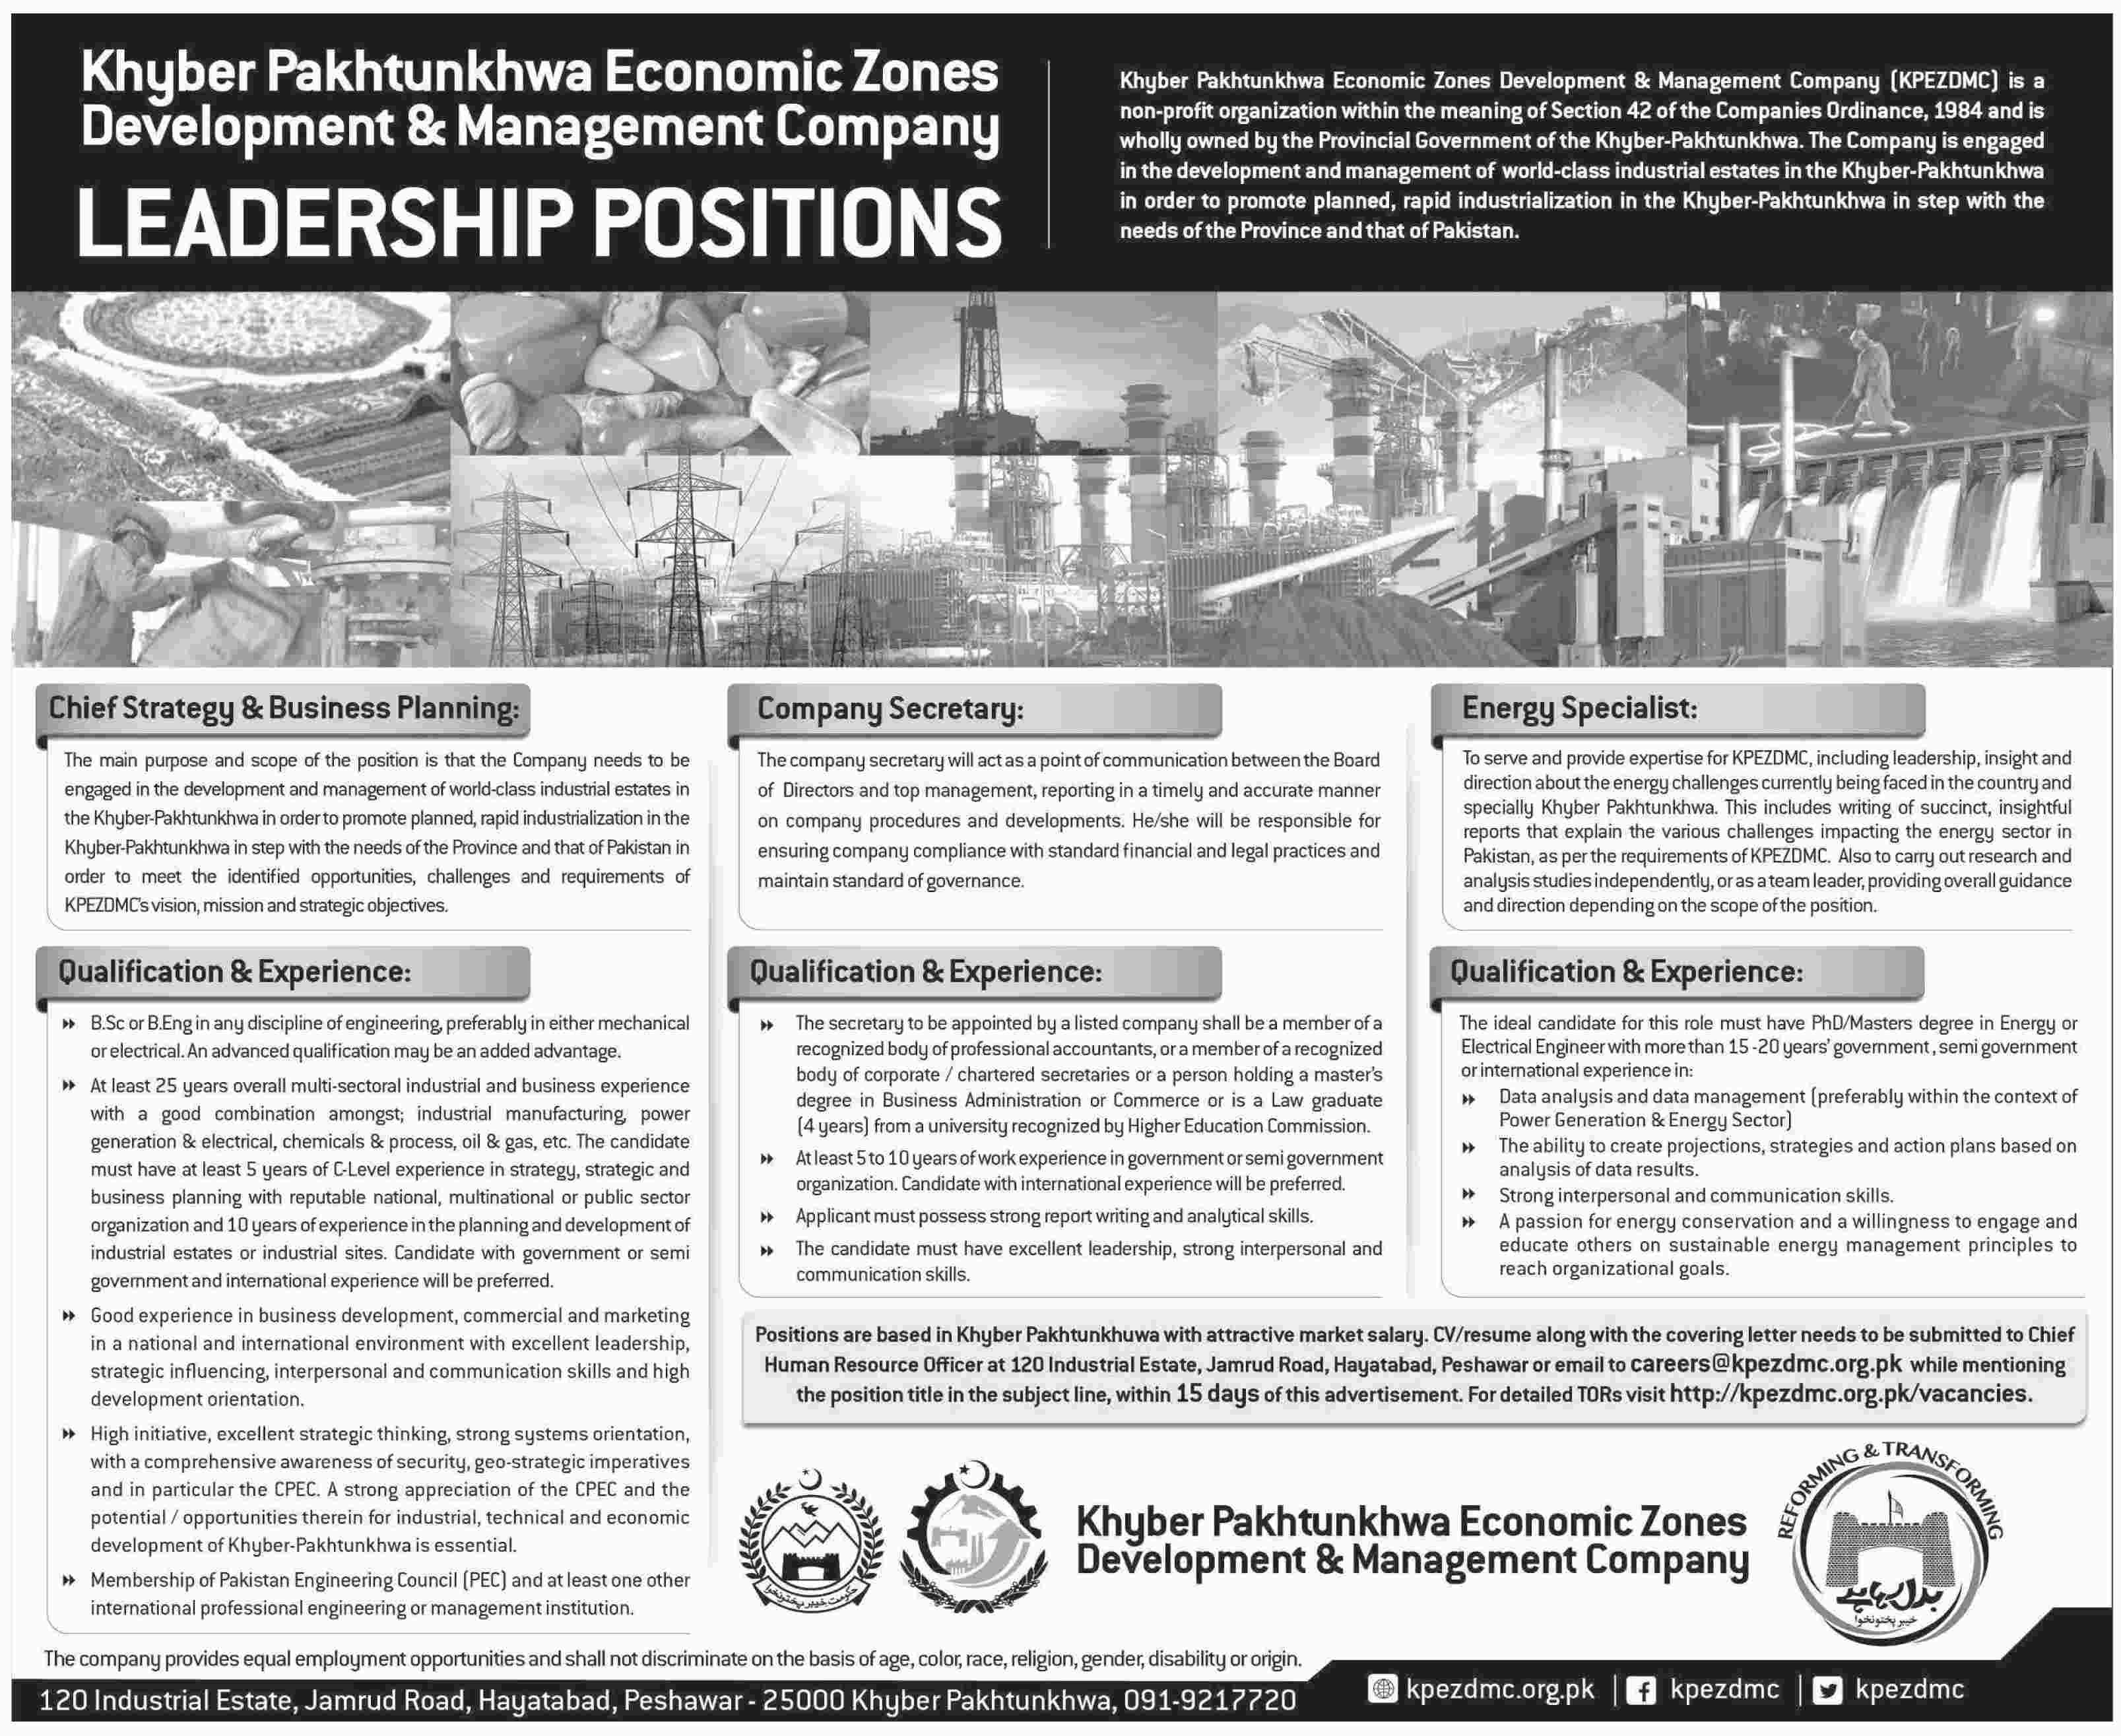 Khyber Pahtunkhwa Economic Zones Development and Management Company Jobs